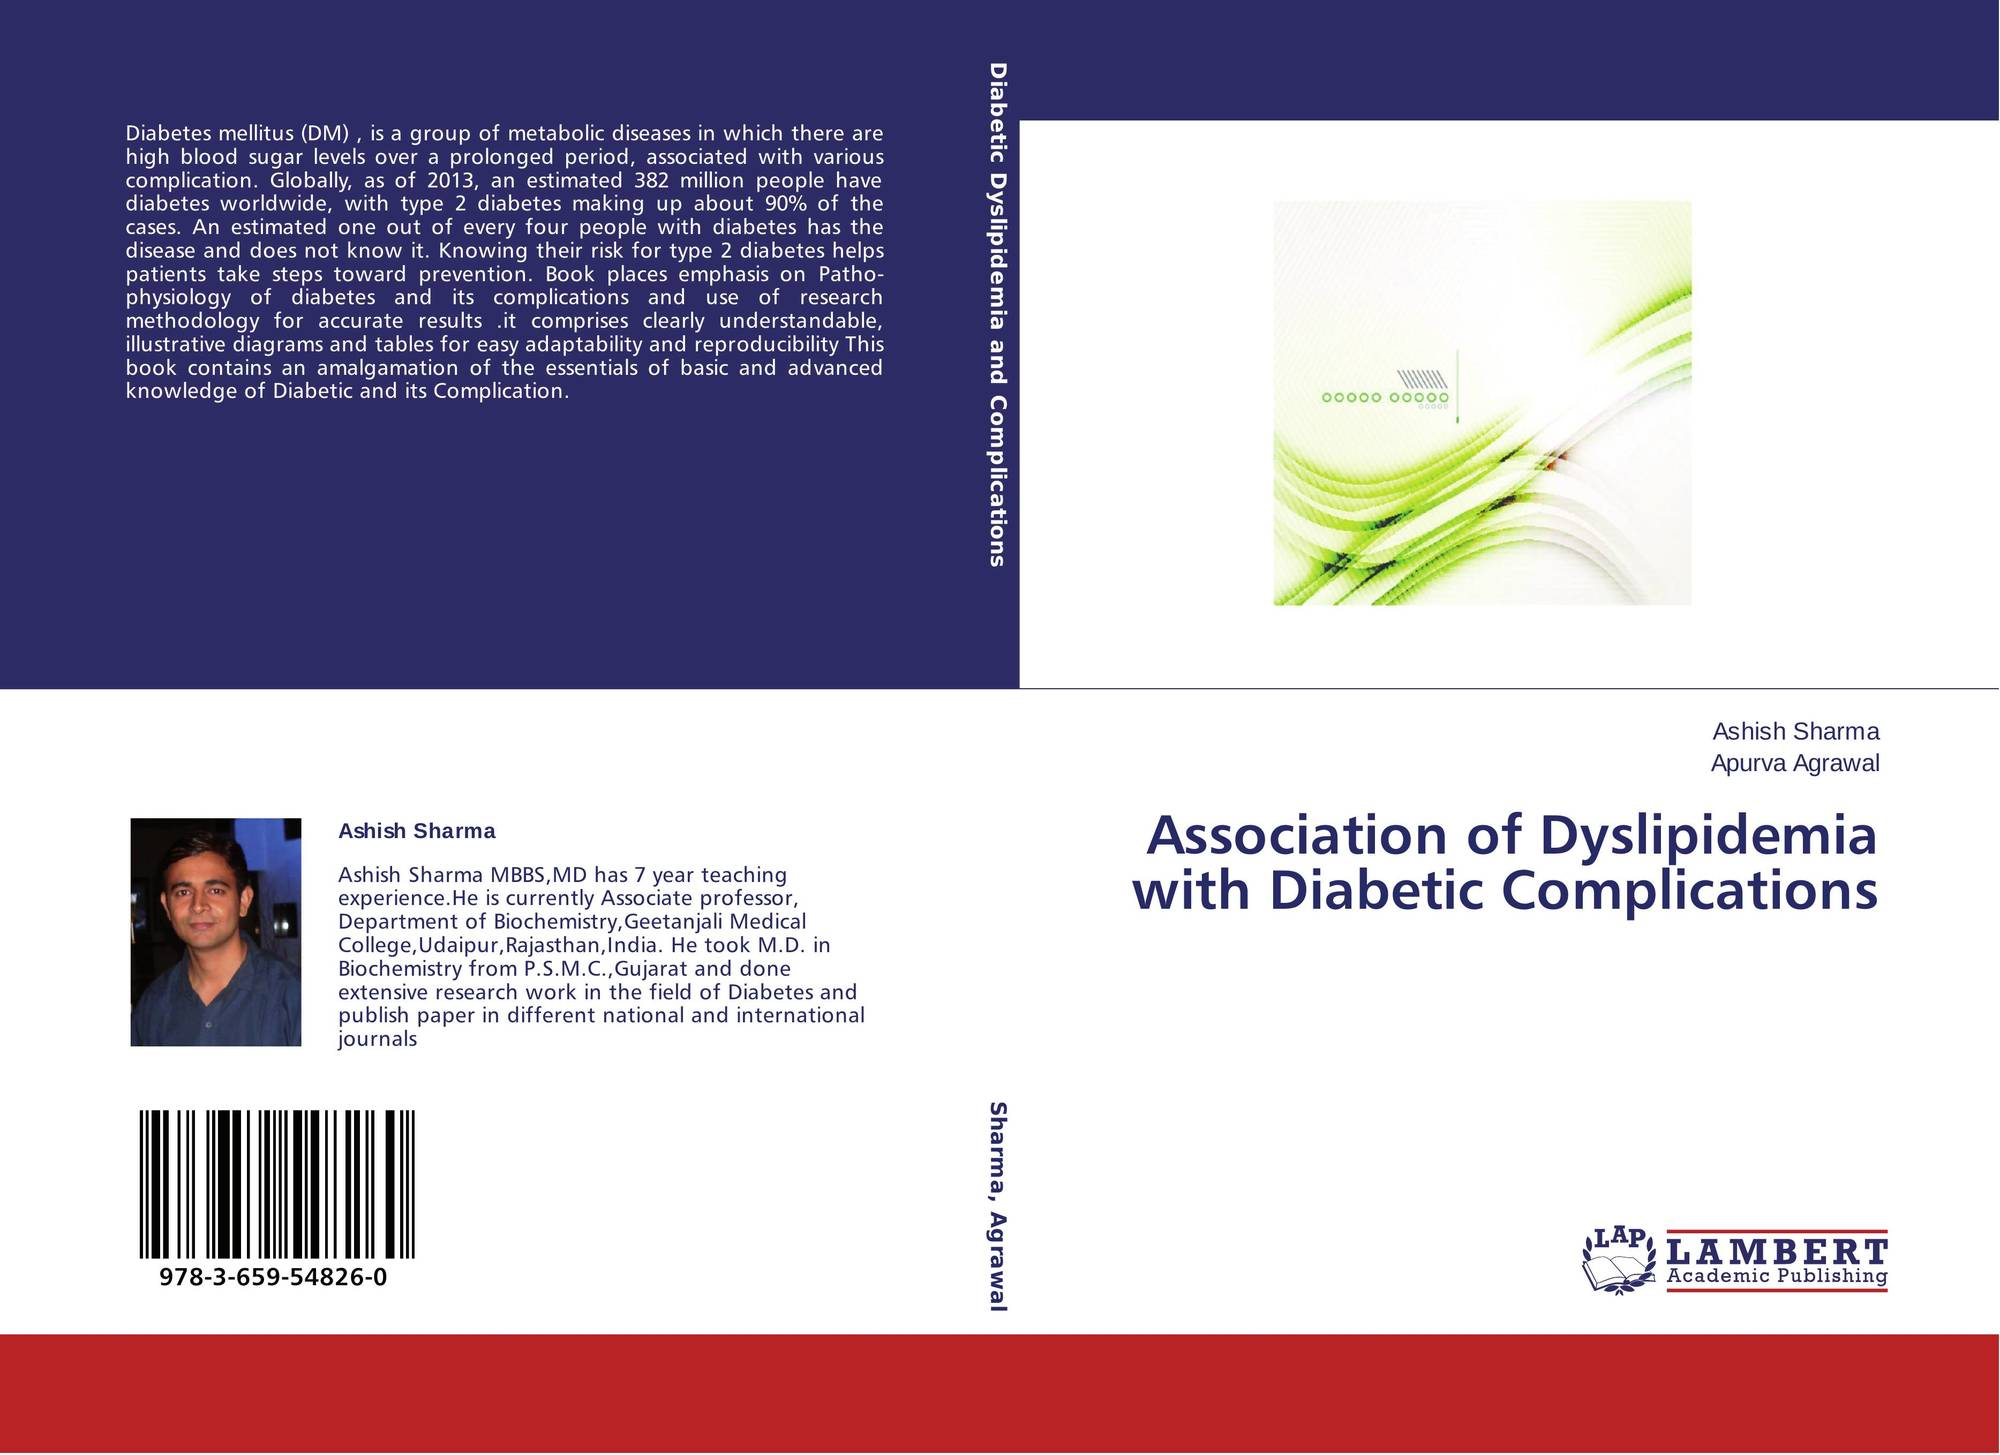 Association of Dyslipidemia with Diabetic Complications, 978